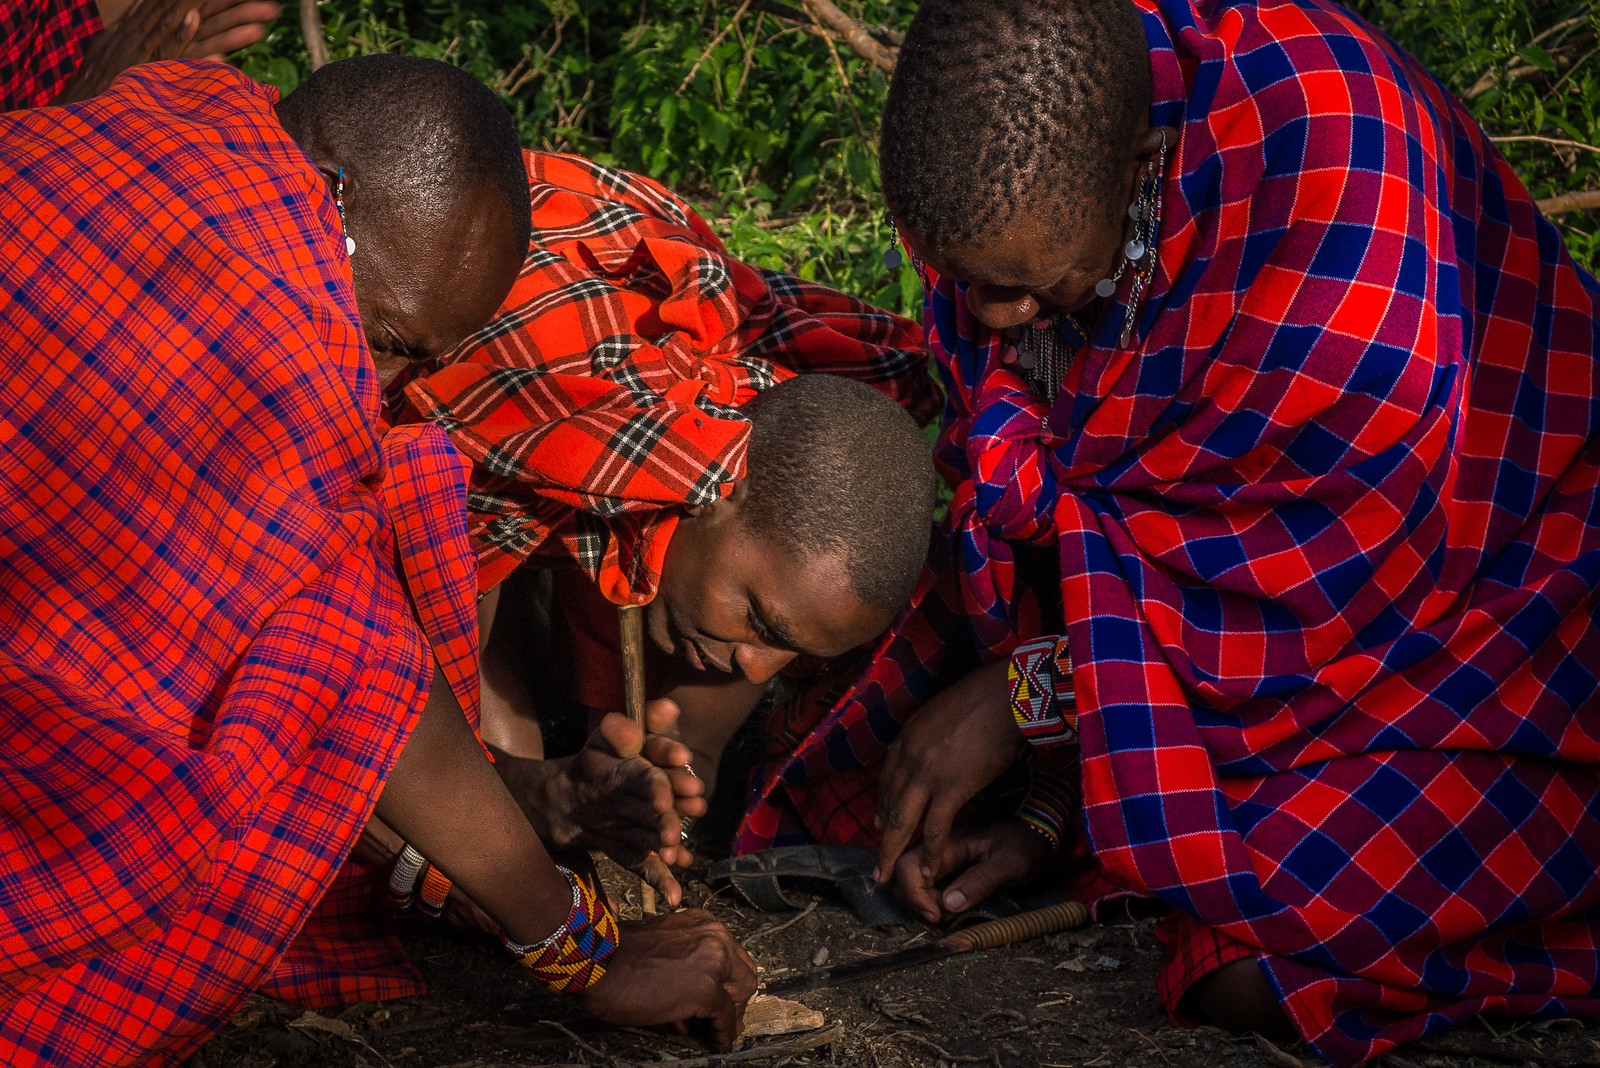 the Maasai lighting a fire by hand